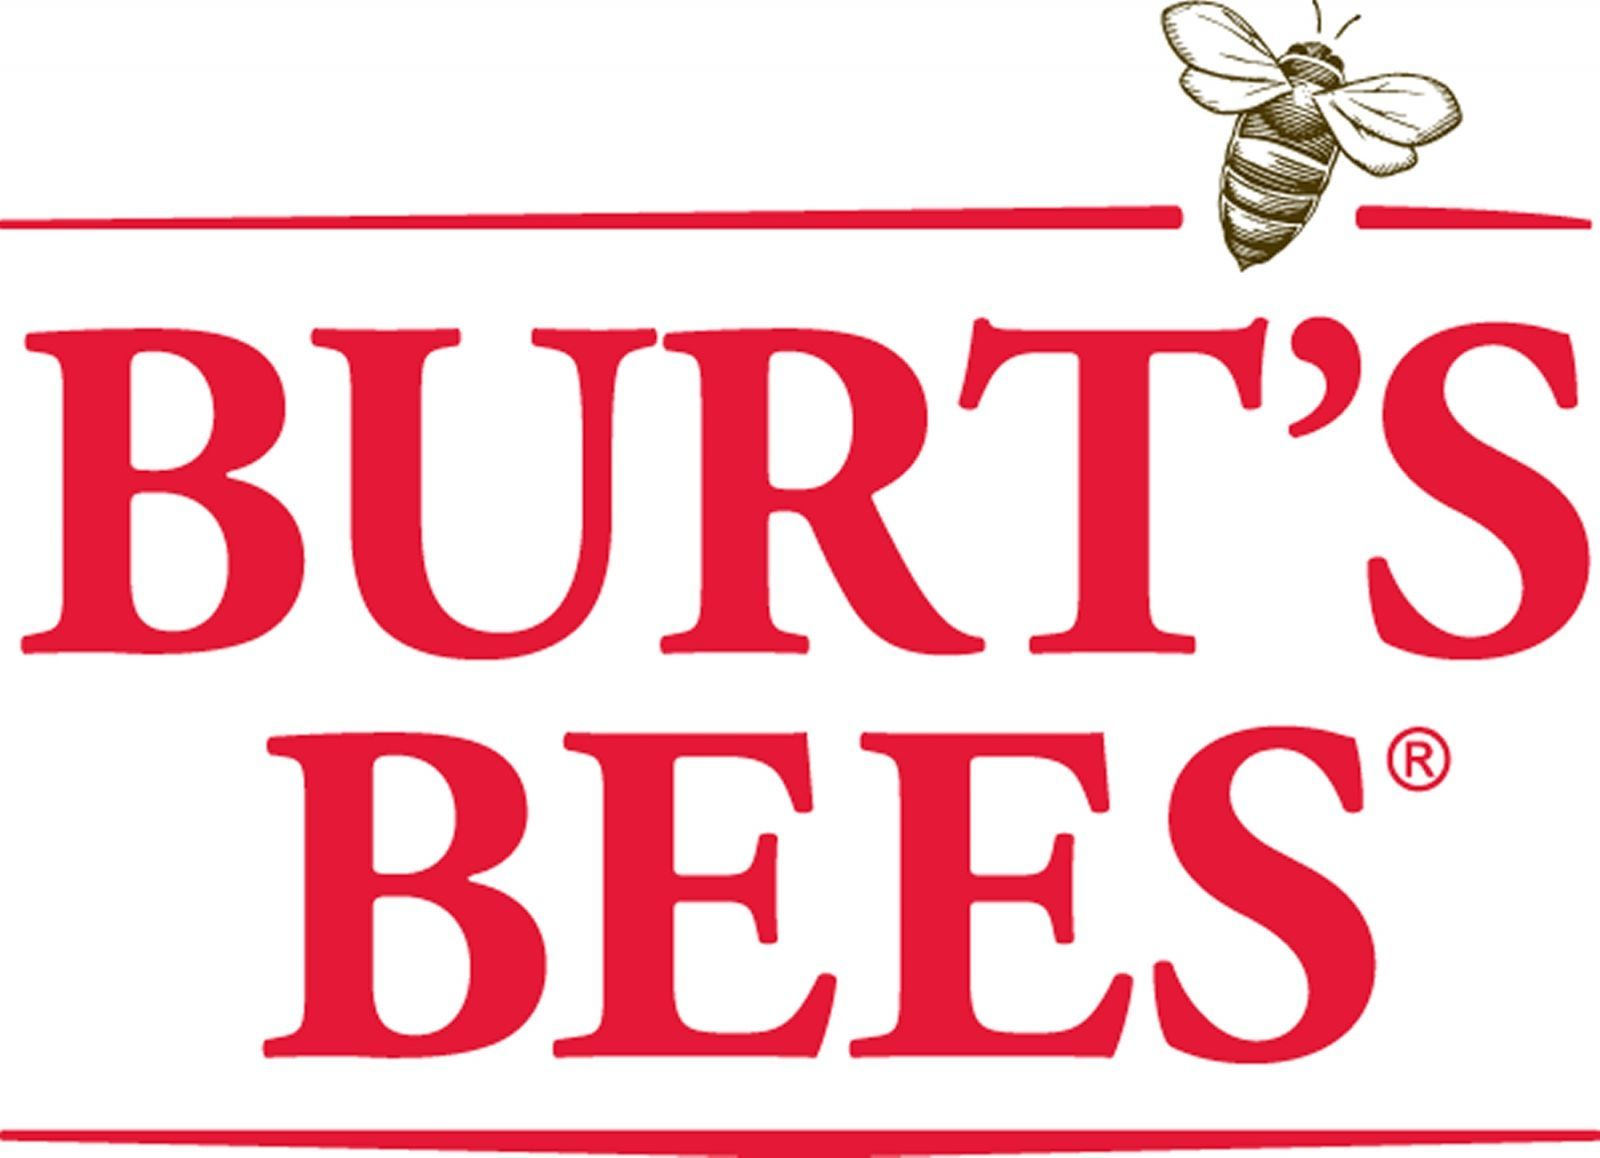 image about Burt's Bees Coupons Printable named Burts-bees Discount coupons - The Krazy Coupon Woman